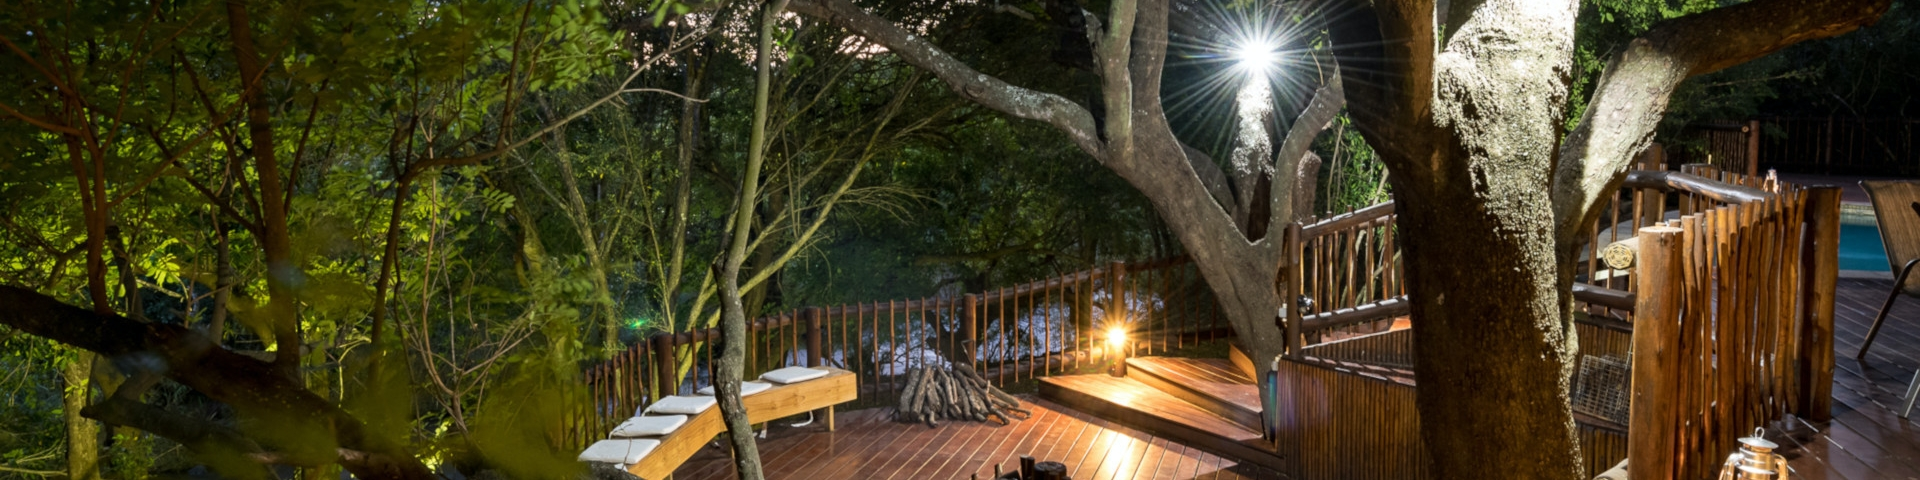 Accommodation in Panorama Route South Africa Island River Lodge